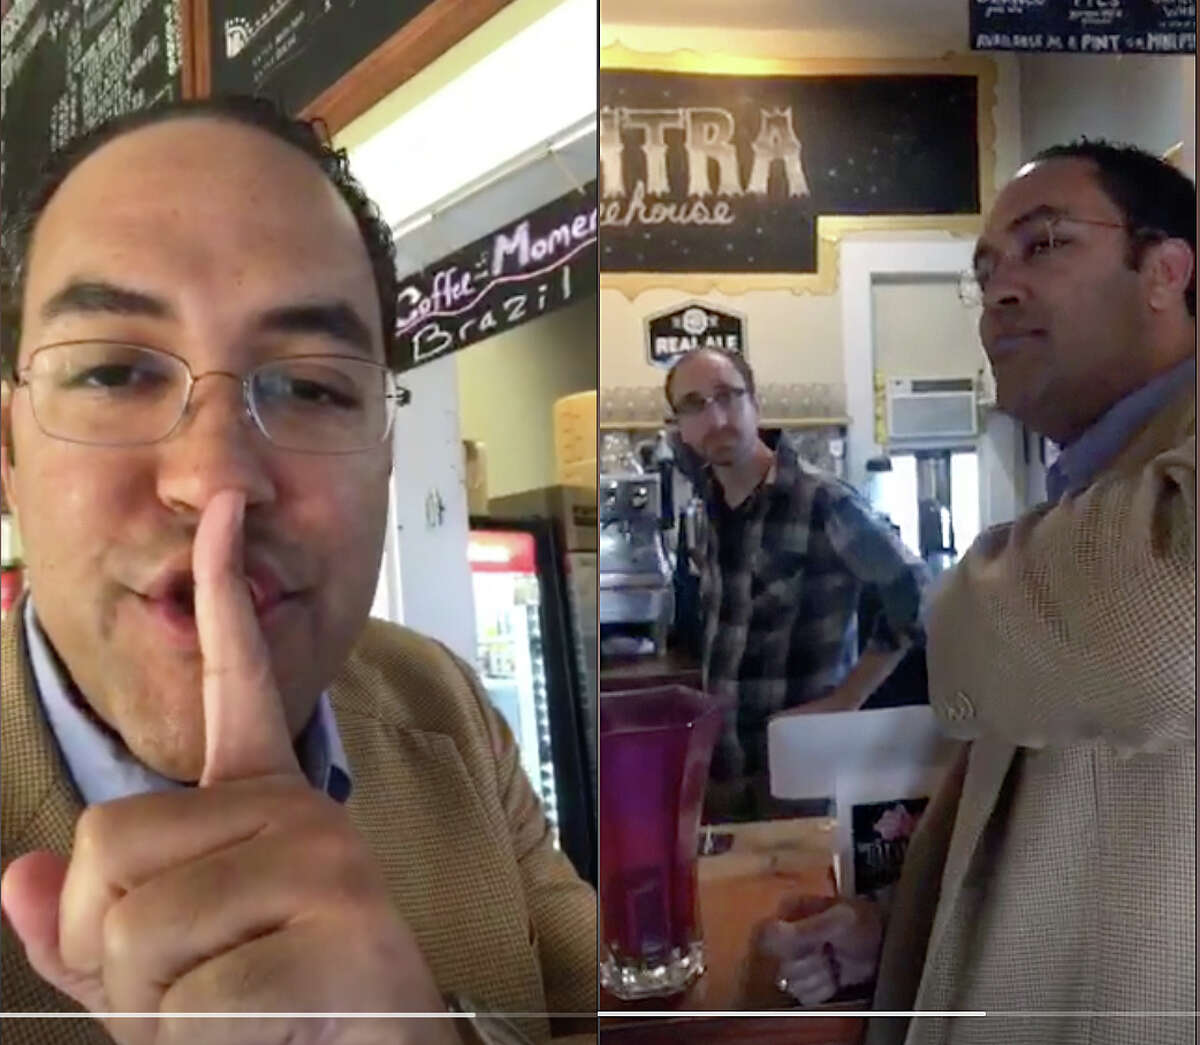 """Rep. Will Hurd, a Republican who represents Southwest Texas, stops a Tantra Coffee in San Marcos. He and Rep. Beto O'Rourke, a Democrat from El Paso, are periscoping live while on a ?""""bipartisan roadtrip town hall?• while driving from San Antonio to Washington, D.C., after a blizzard affected travel plans"""